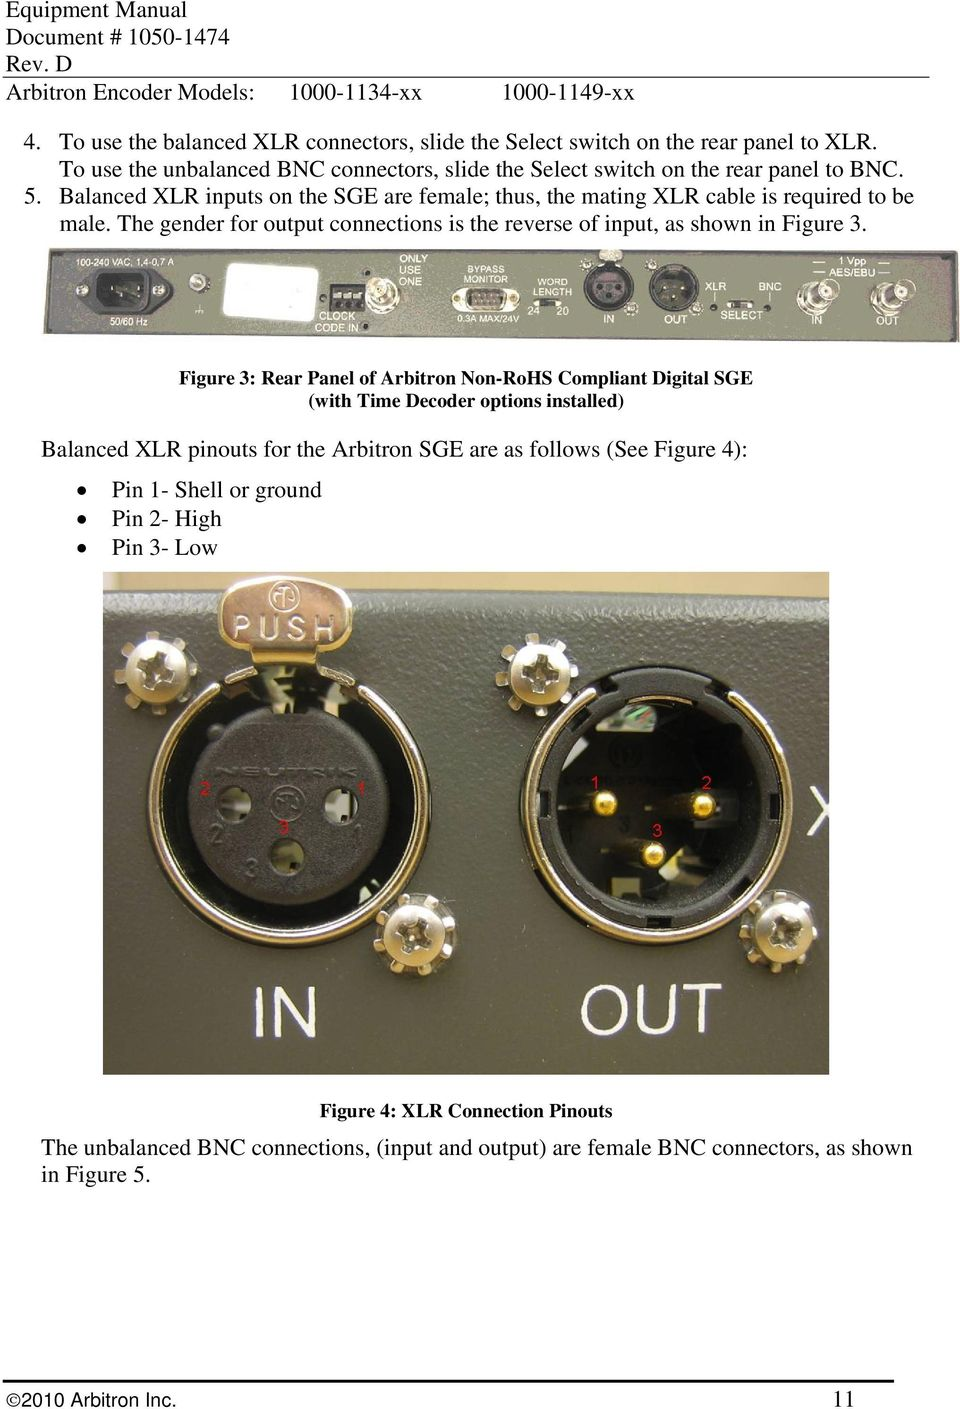 Equipment Manual Encoder Pdf Xlr Connector Wiring Http Buzz Master Com Wp Includes Figure 3 Rear Panel Of Arbitron Non Rohs Compliant Digital Sge With Time 12 5 Bnc Connectors 6 If Using